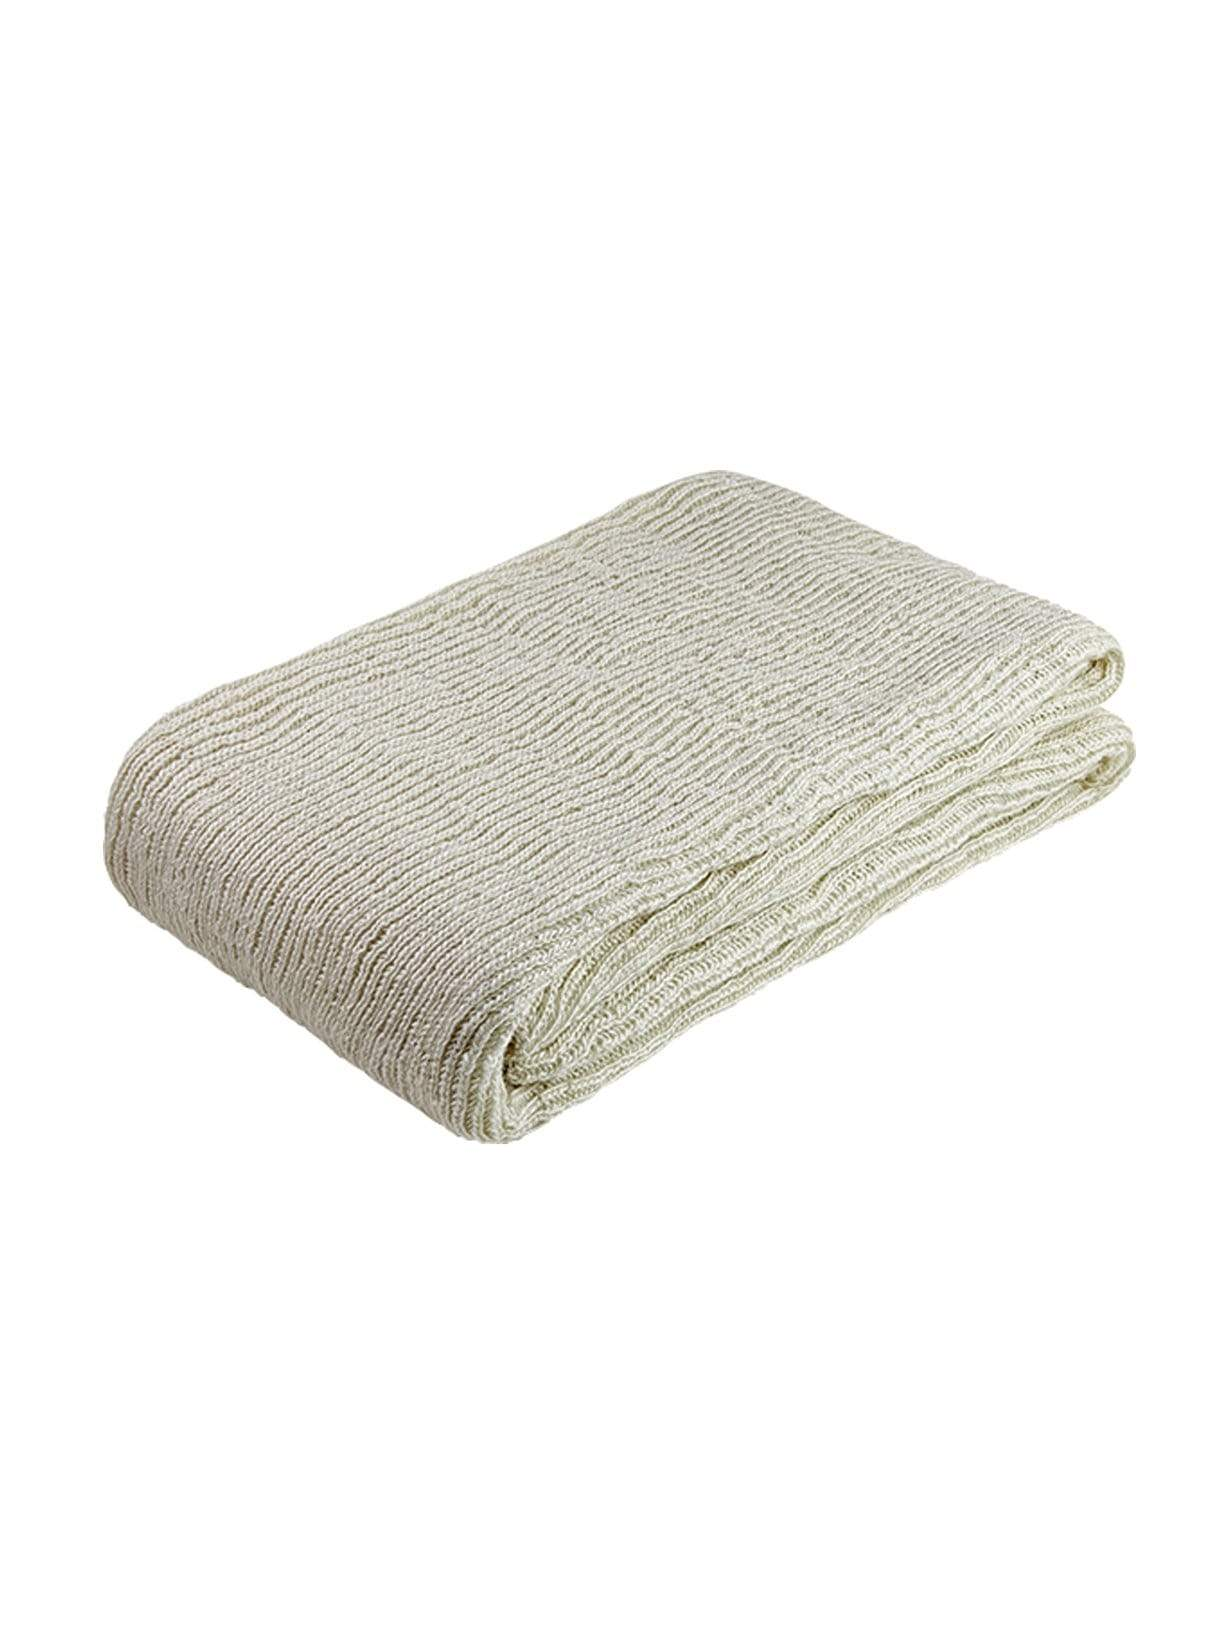 Knitted throw - natural - 130 x 180cm